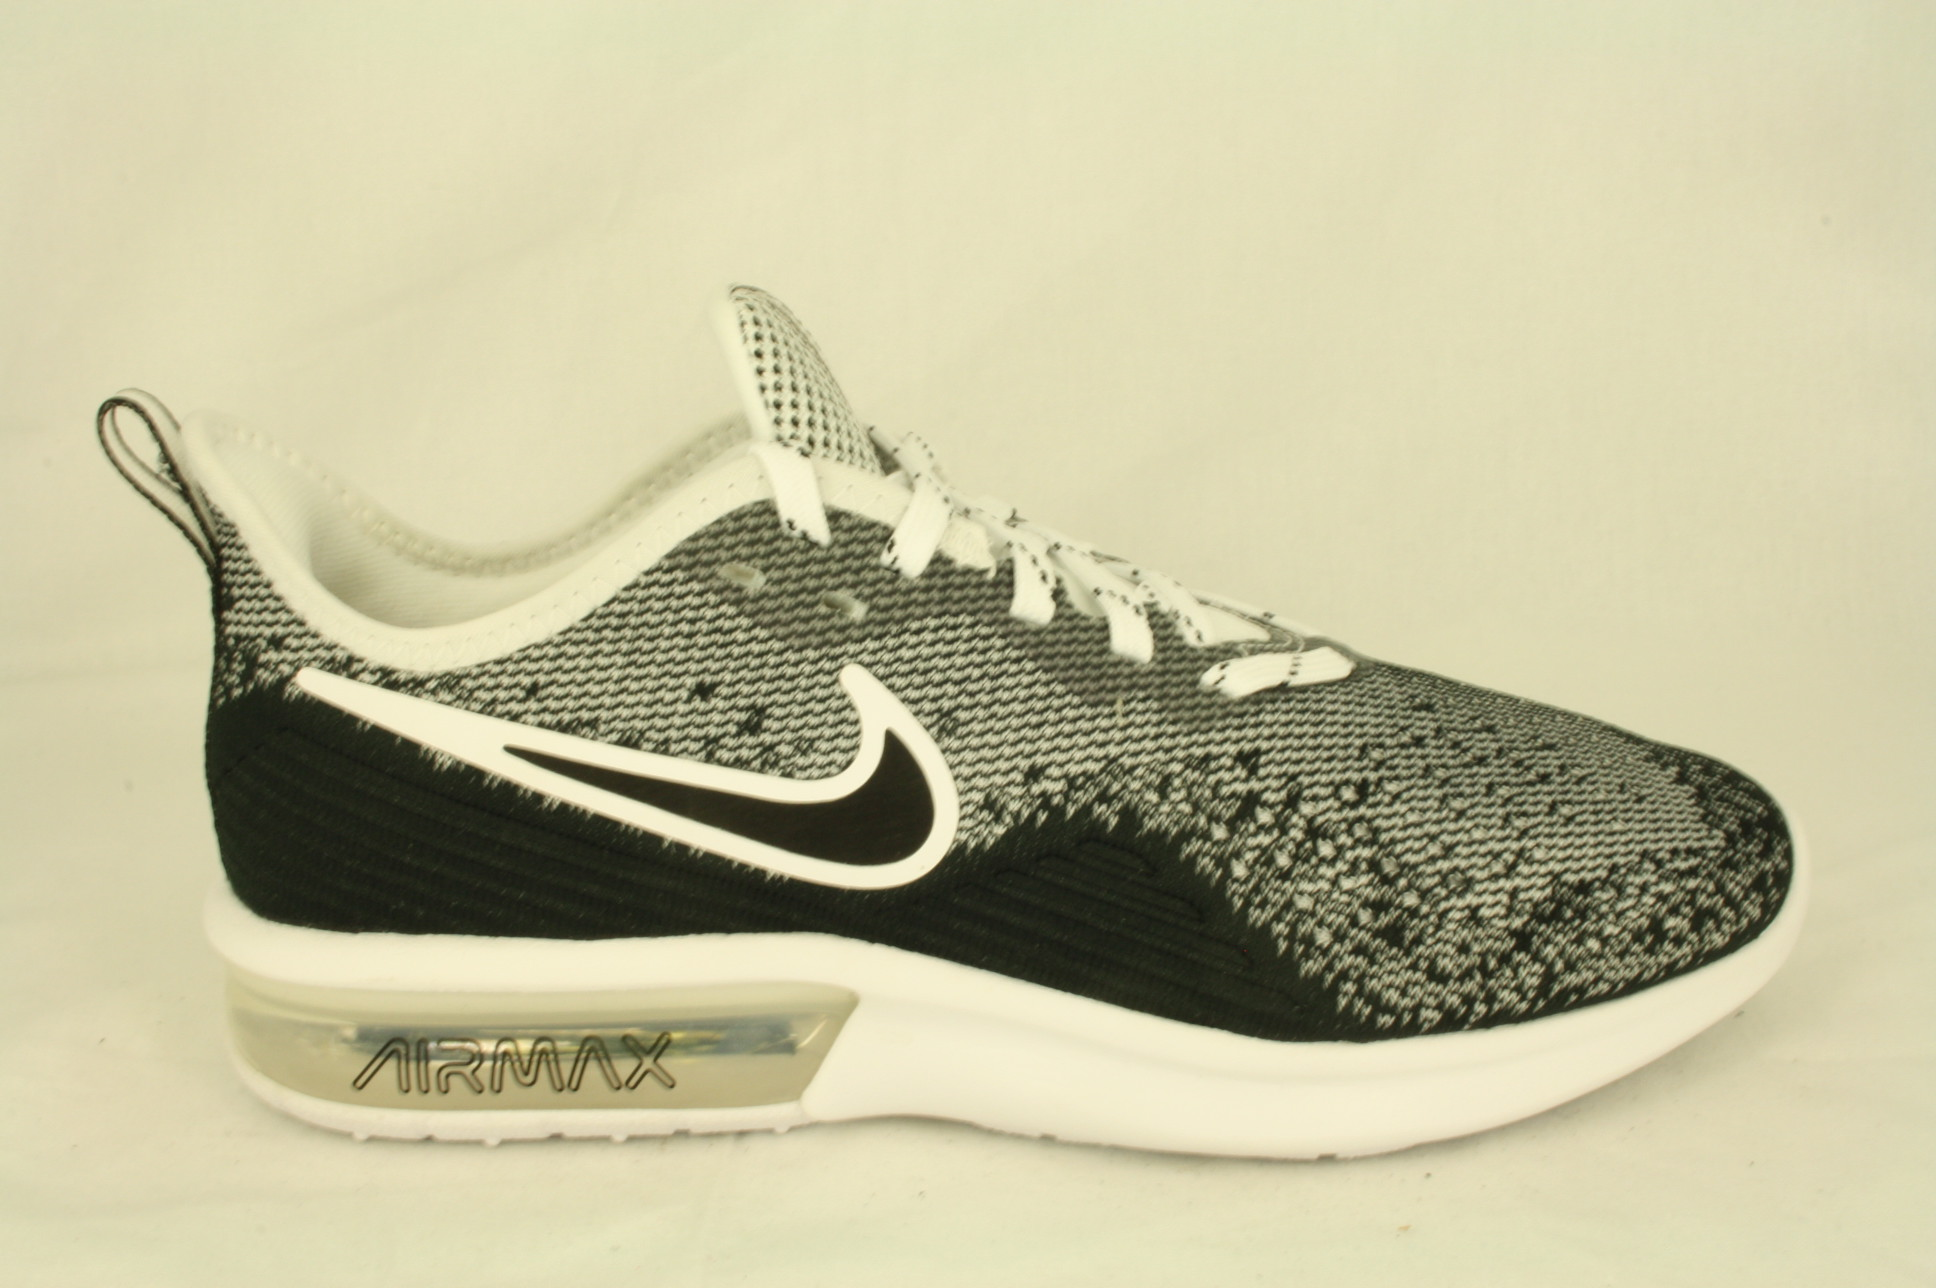 Nike: AO4485 001 Nike Air Max Sequent 4, witzwart, maat 39 tm 46 € 110,00